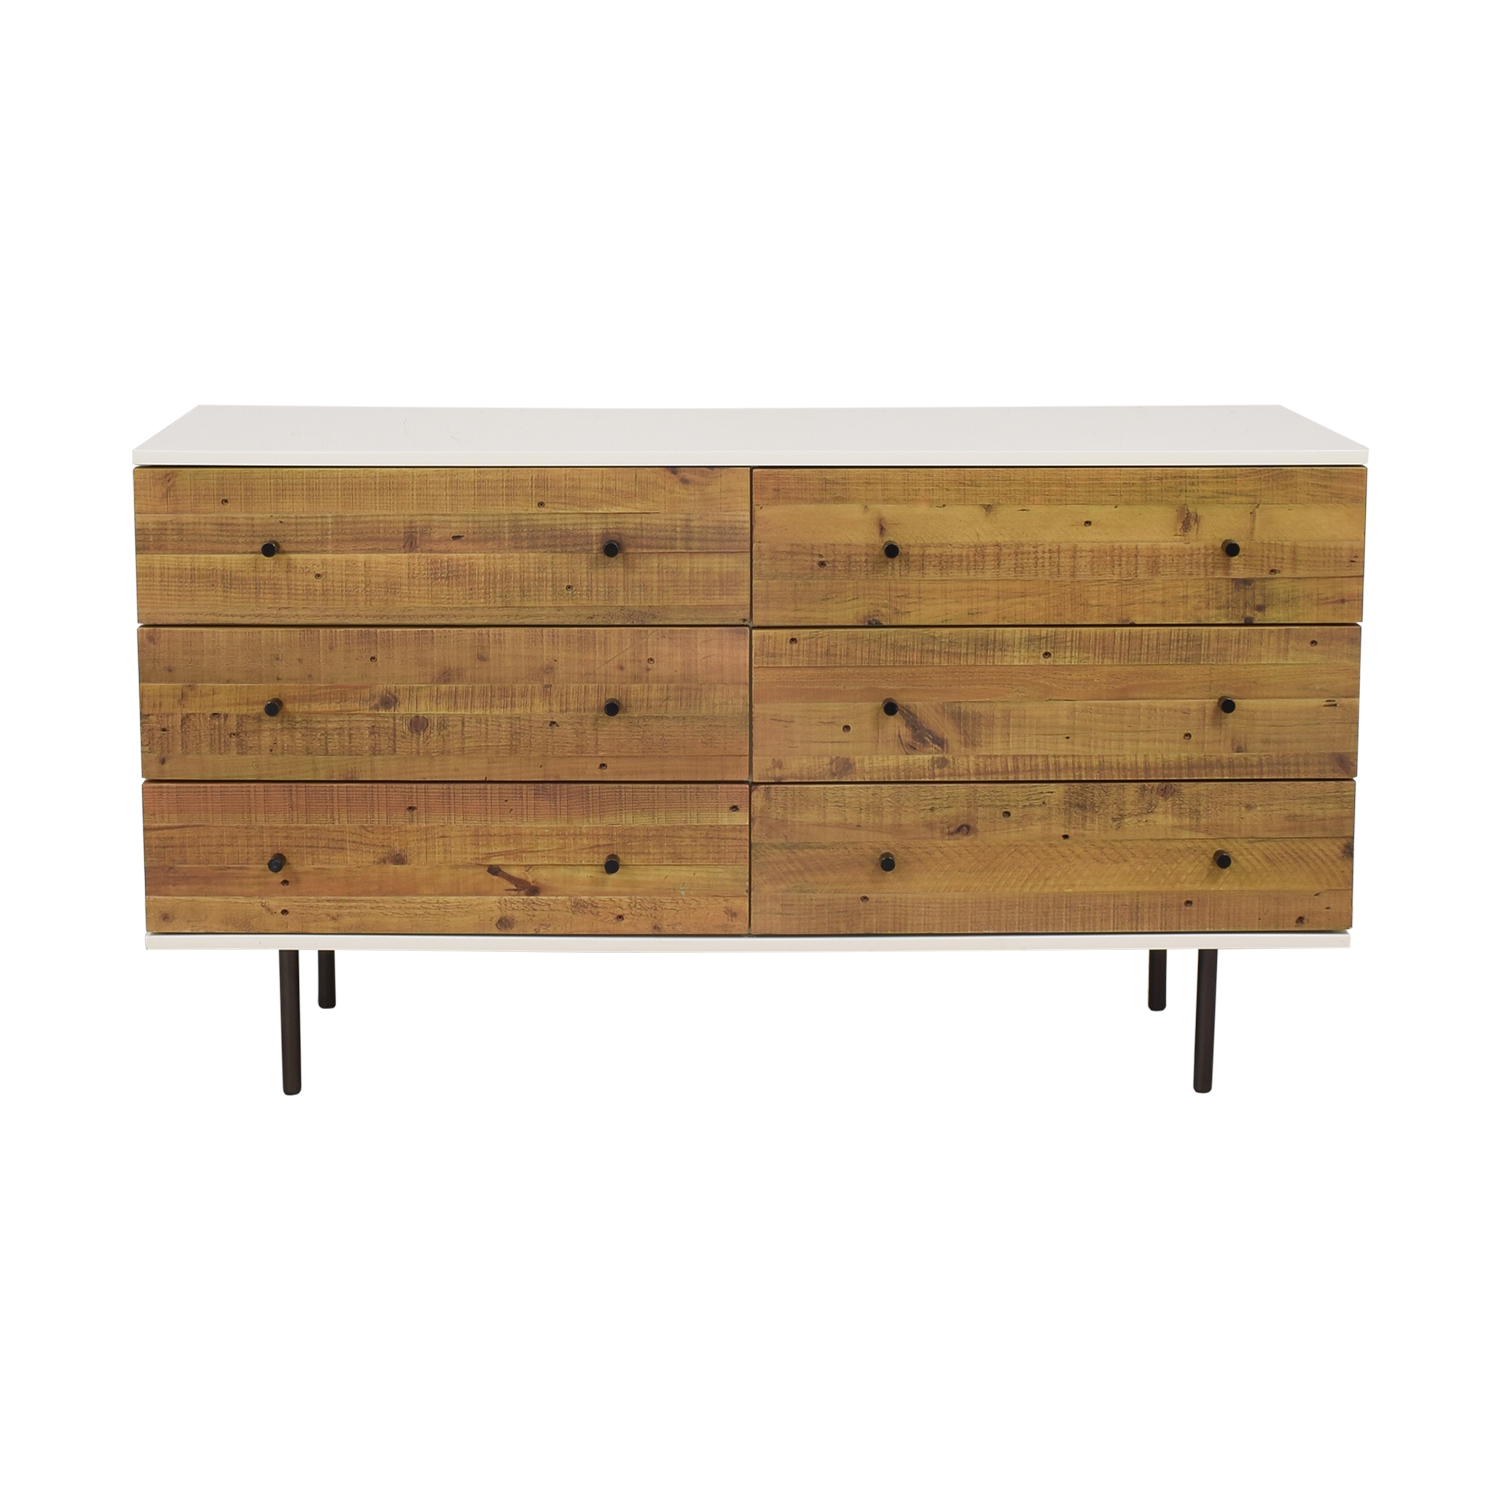 West Elm West Elm Reclaimed Wood & Lacquer Dresser nj